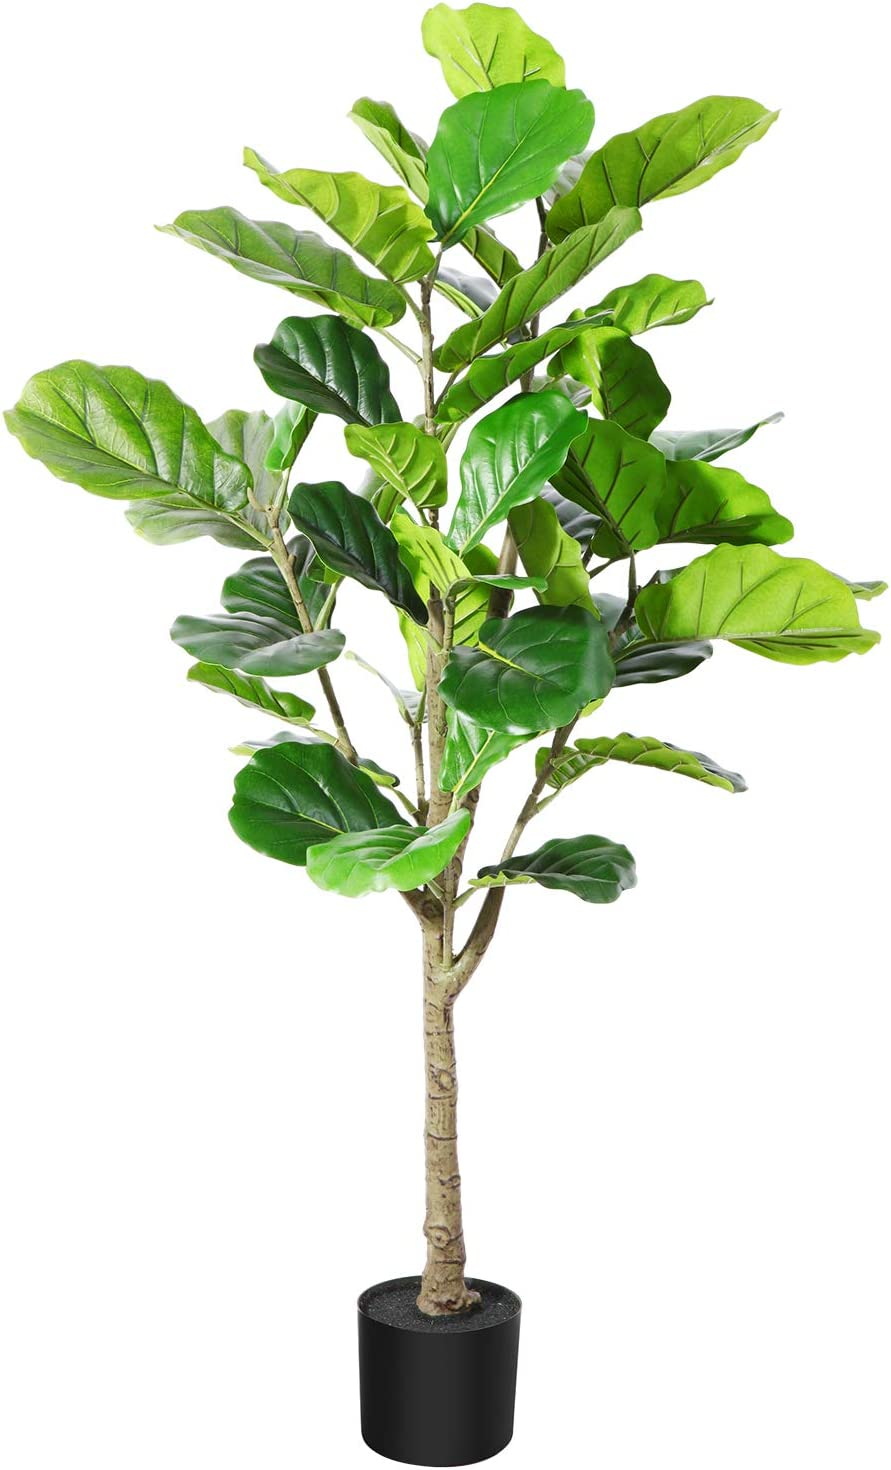 DR.Planzen Artificial Fiddle Leaf Fig Tree 4 Feet Fake Ficus Lyrata Plant in Pot for Home Office Decor Indoor